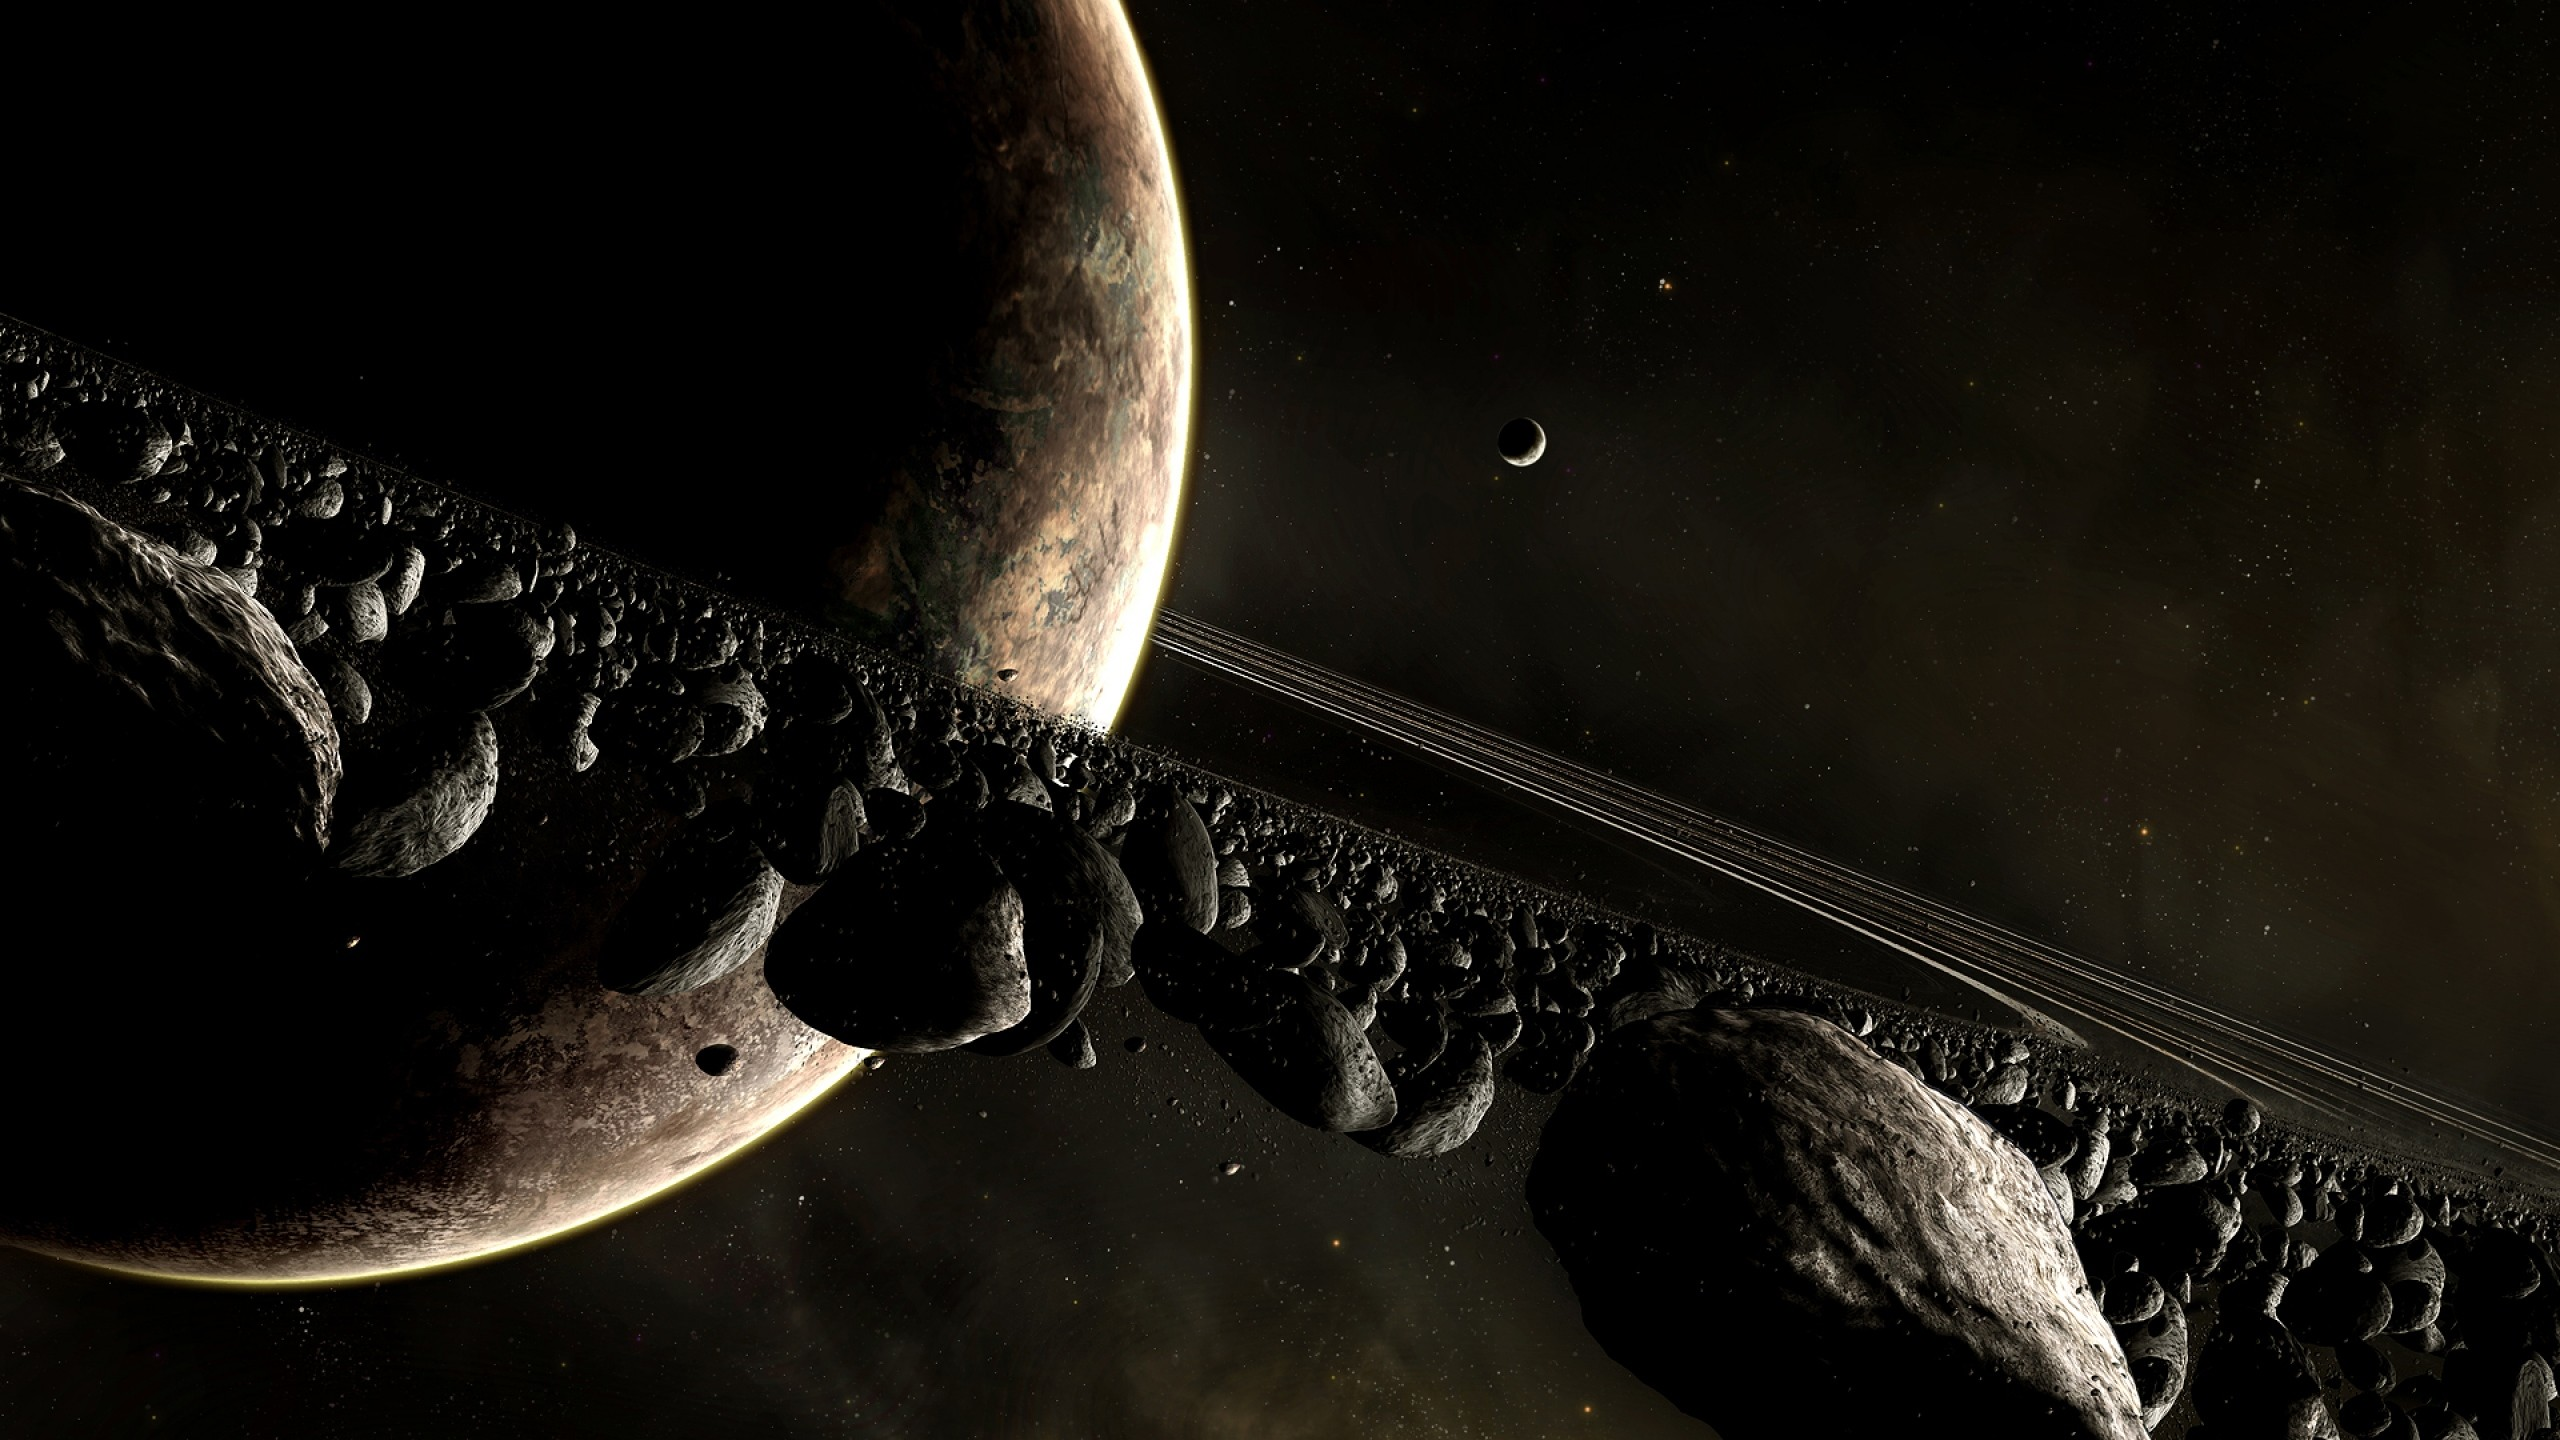 2560x1440 Wallpaper Universe Planet Disaster Space